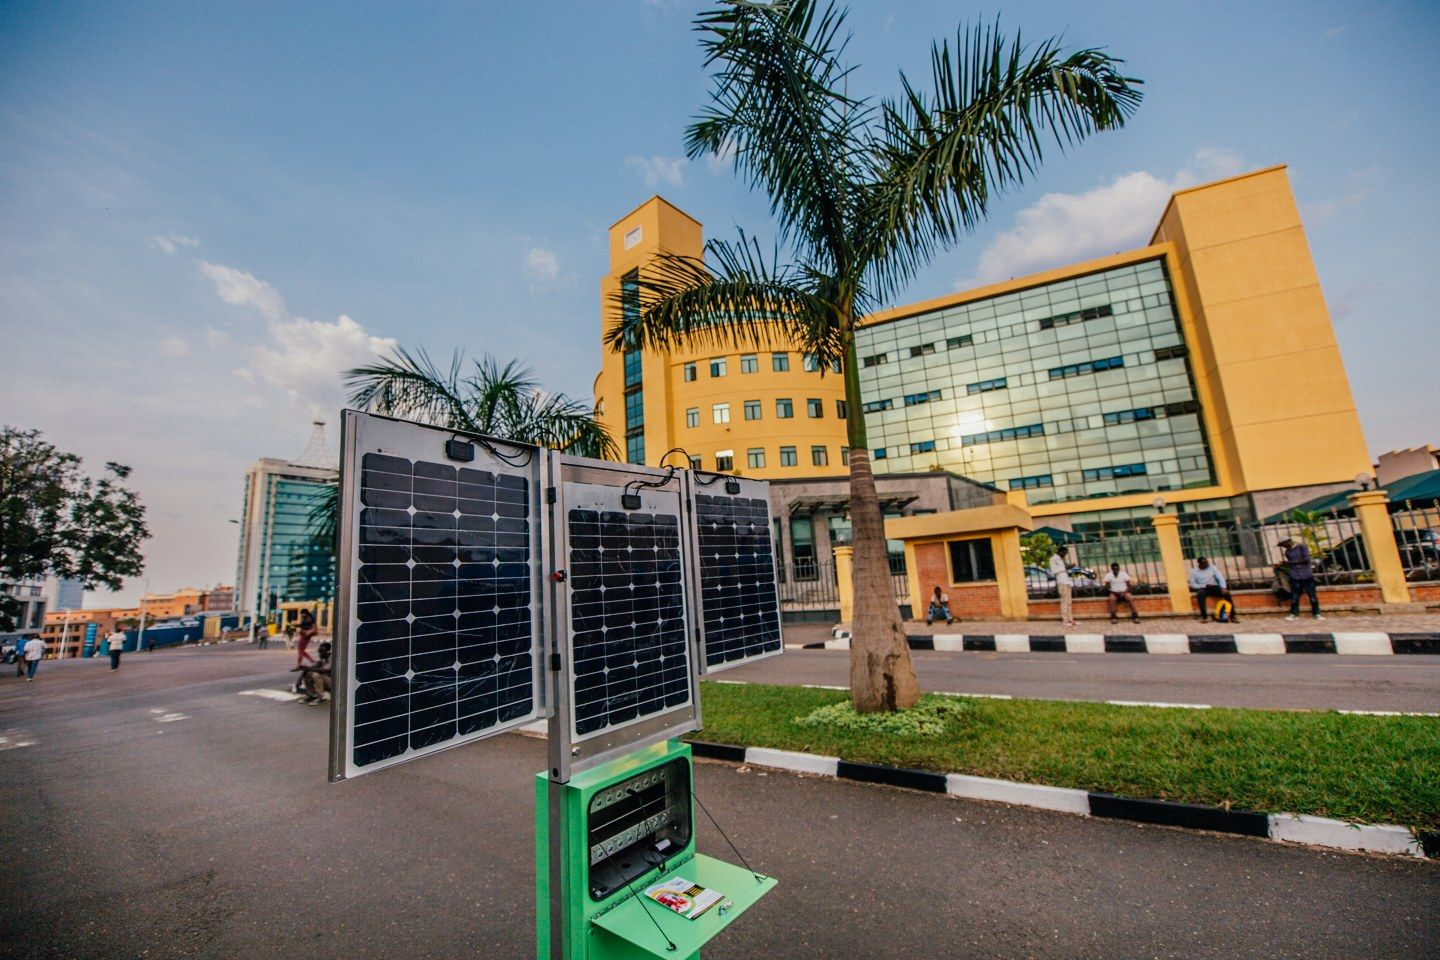 Solar-Powered Kiosks Are Helping Rwandans Power Their Phones and Stay Connected #alternativeenergy